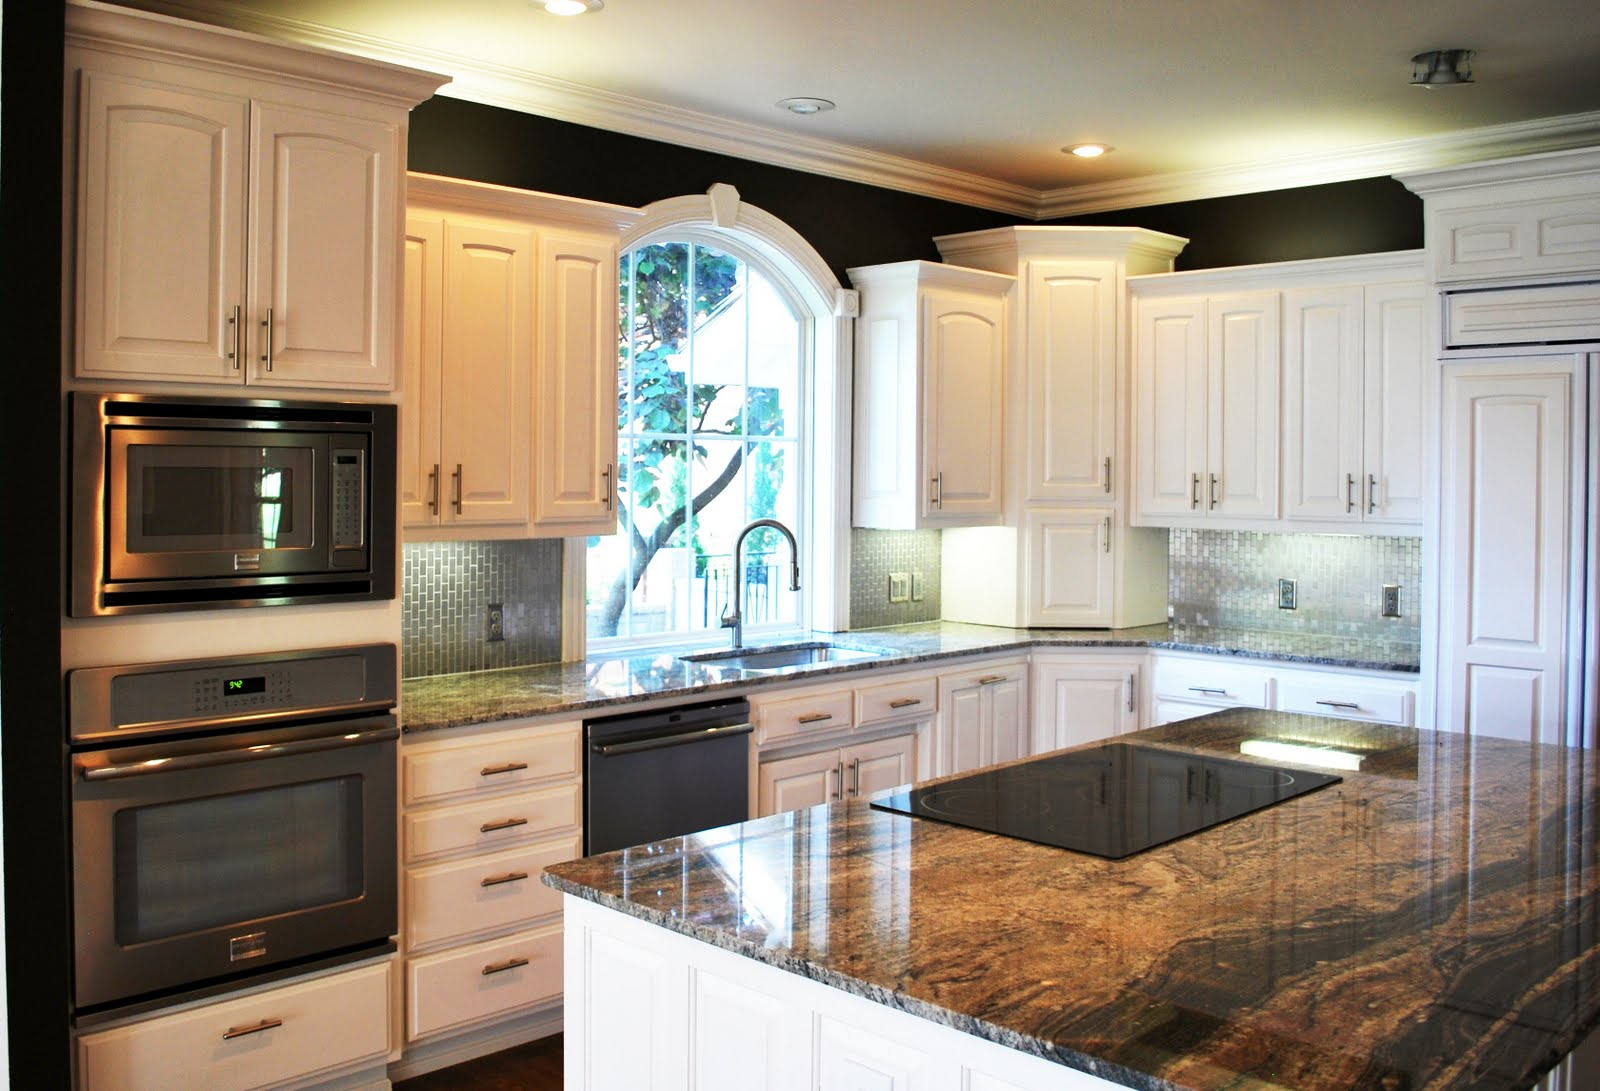 Black Kitchen Cabinets What Color On Wall Black Favorite Paint Colors Blog